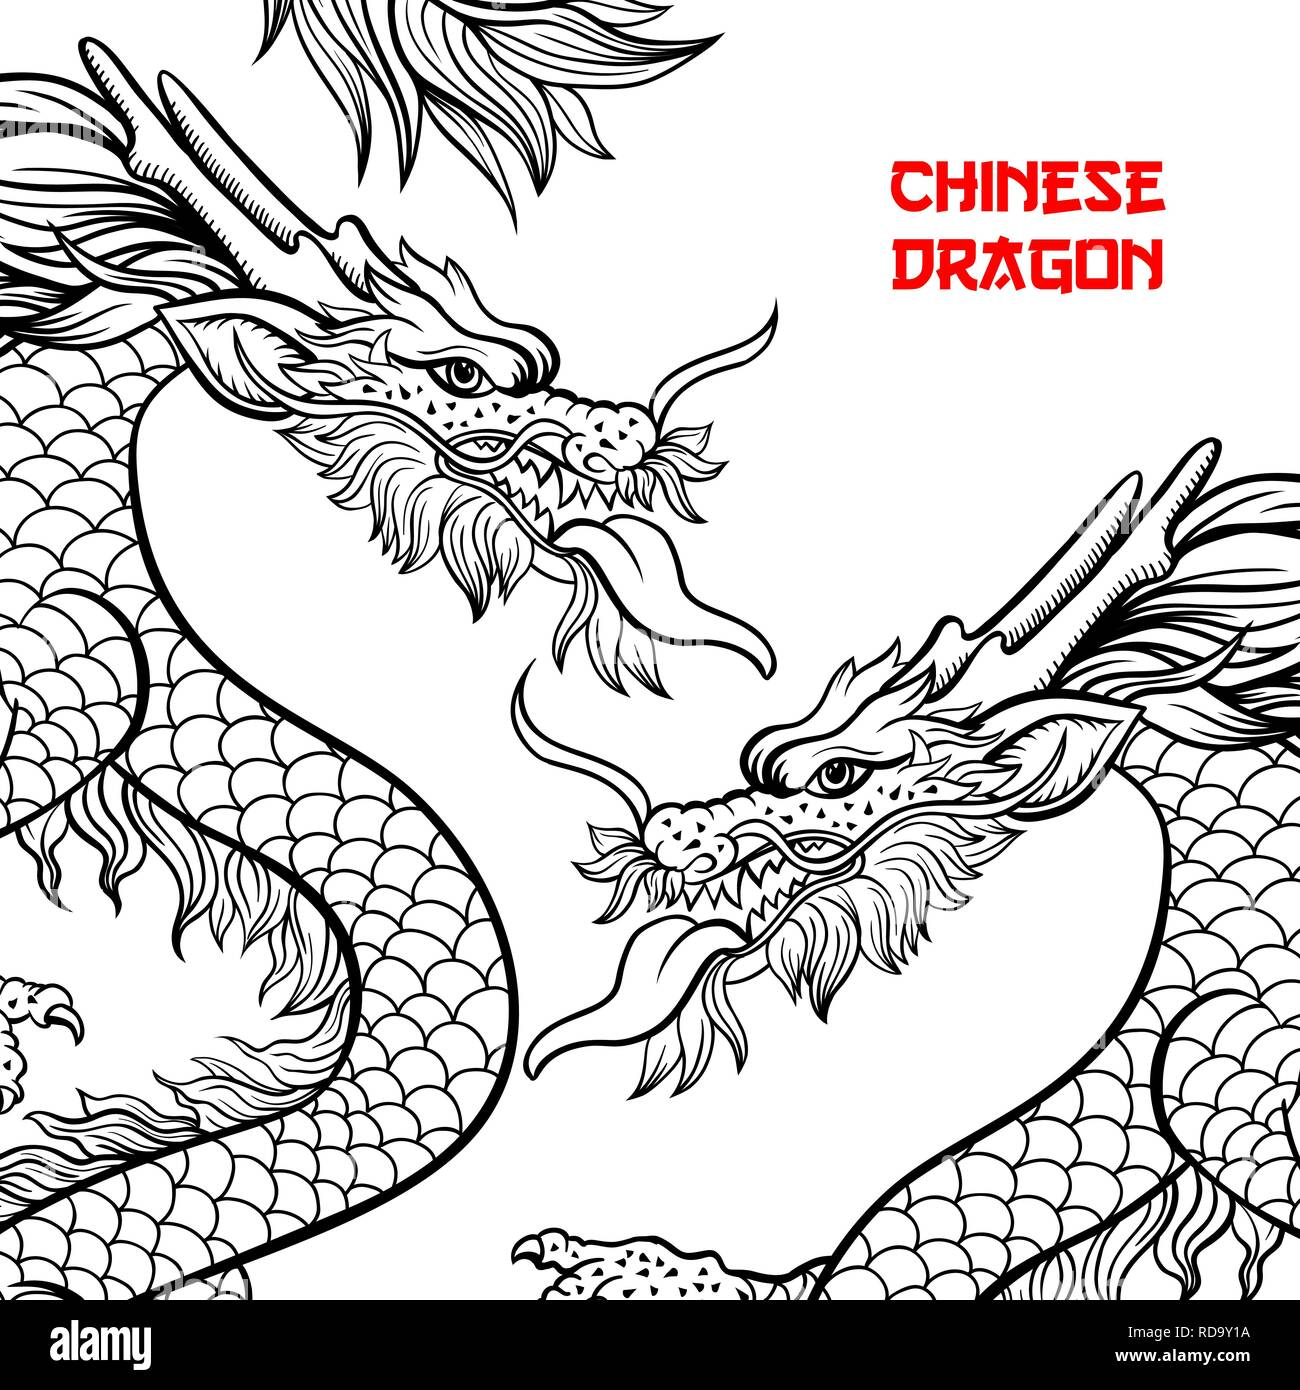 Two Chinese dragons hand drawn vector illustration. Mythical creature ink pen sketch. Black and white clipart. Serpent freehand drawing. Isolated monochrome mythic design element. Chinese new year poster - Stock Image